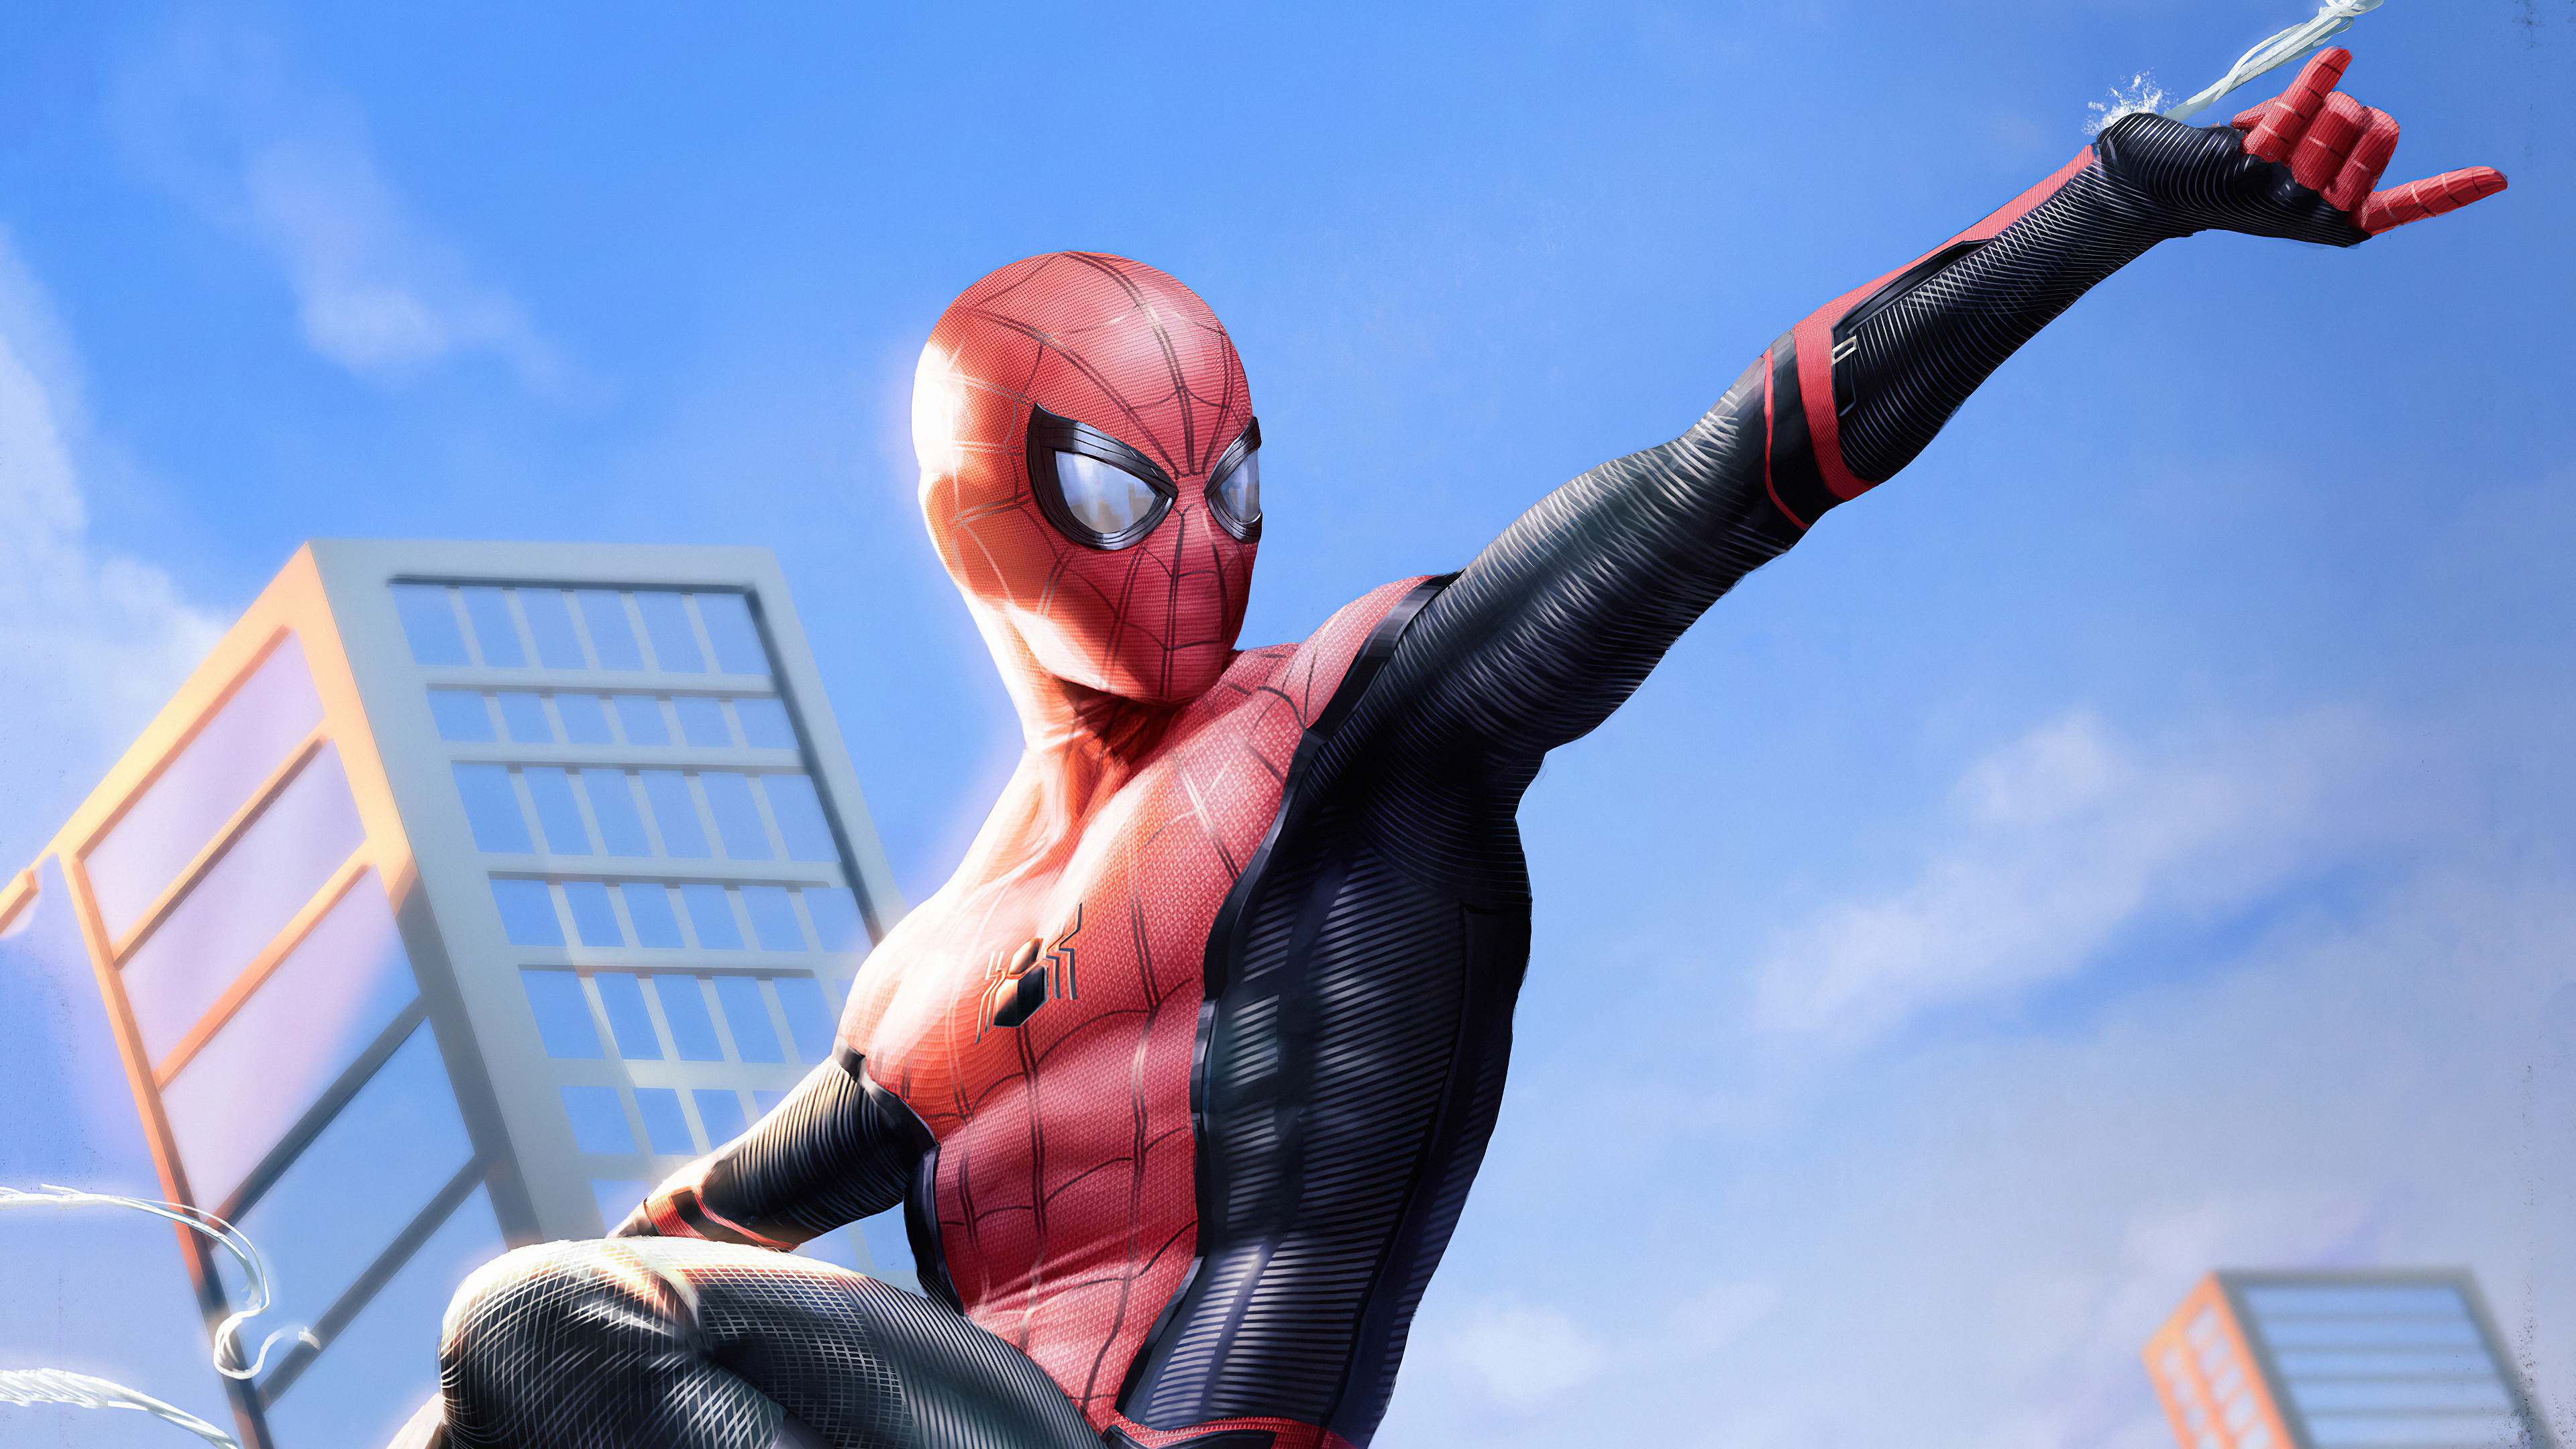 Flying Spiderman Art spider man wallpaper phone hd 4k ...